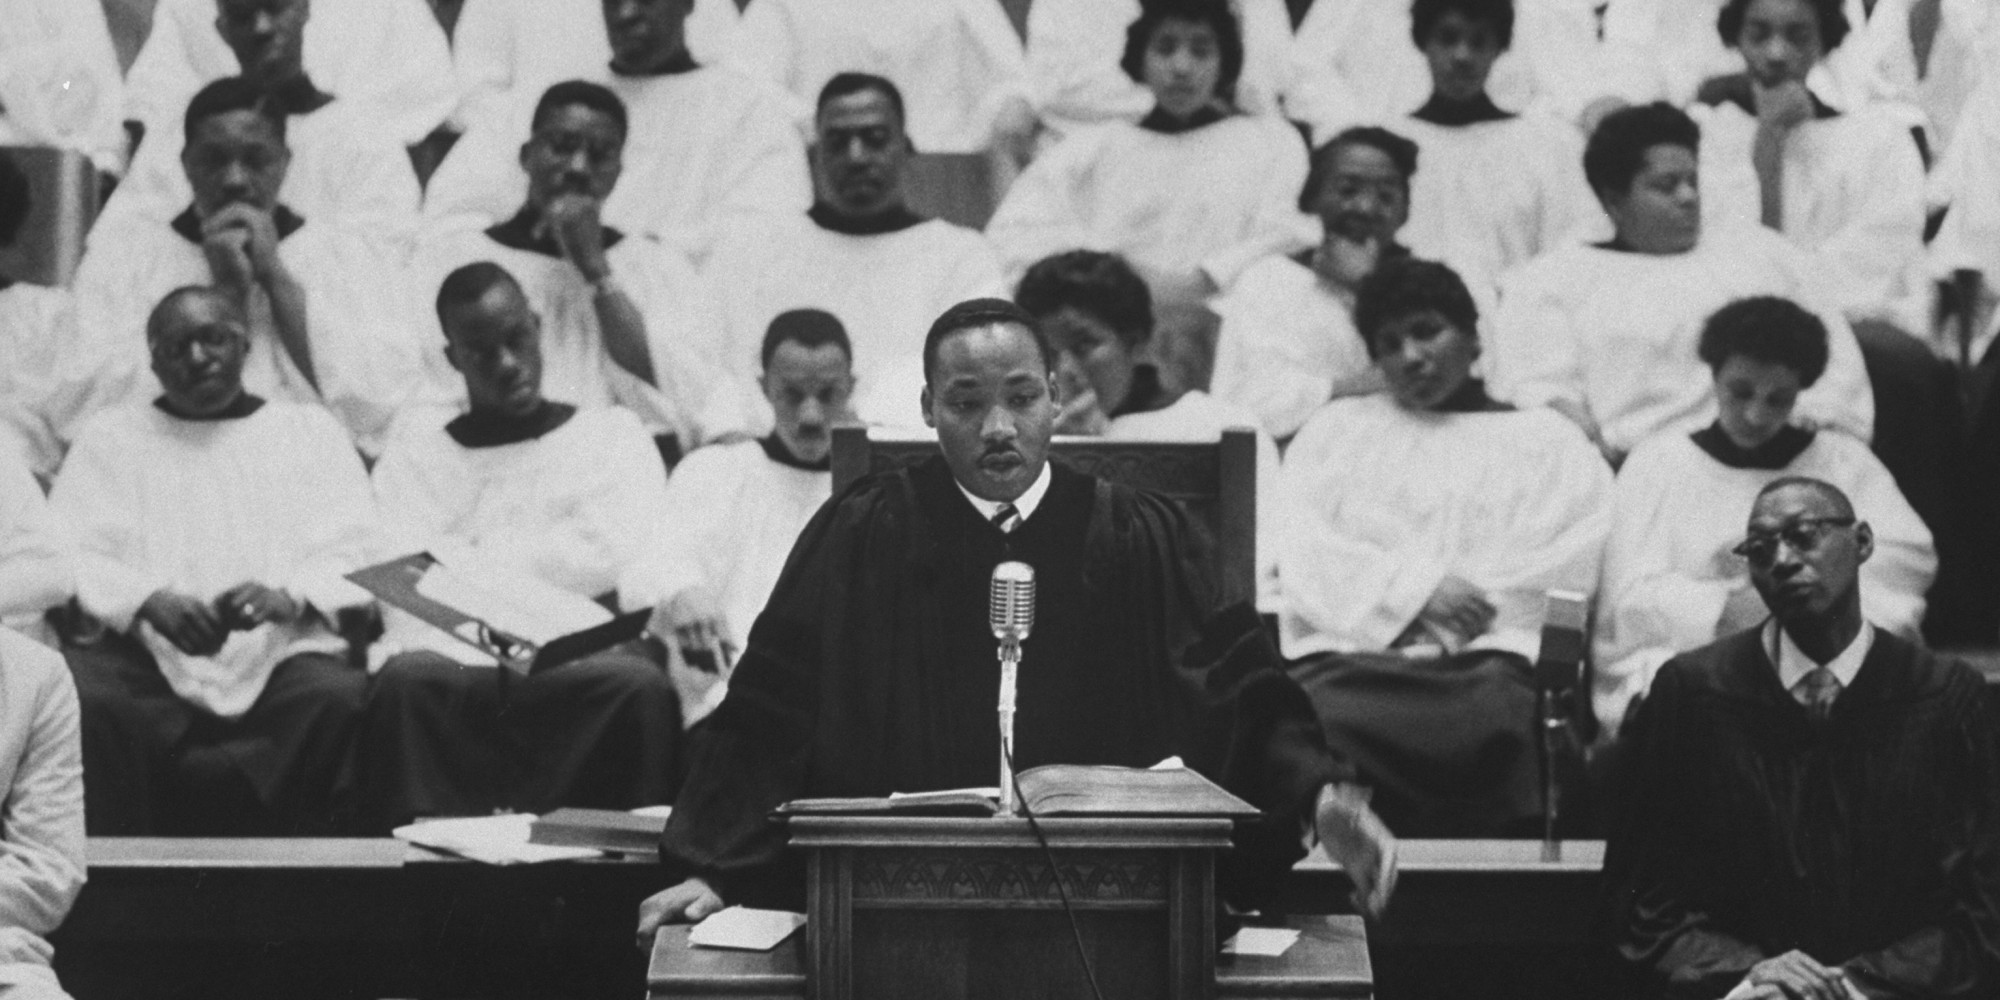 Martin Luther King Jr. (L) preaching in his church. (